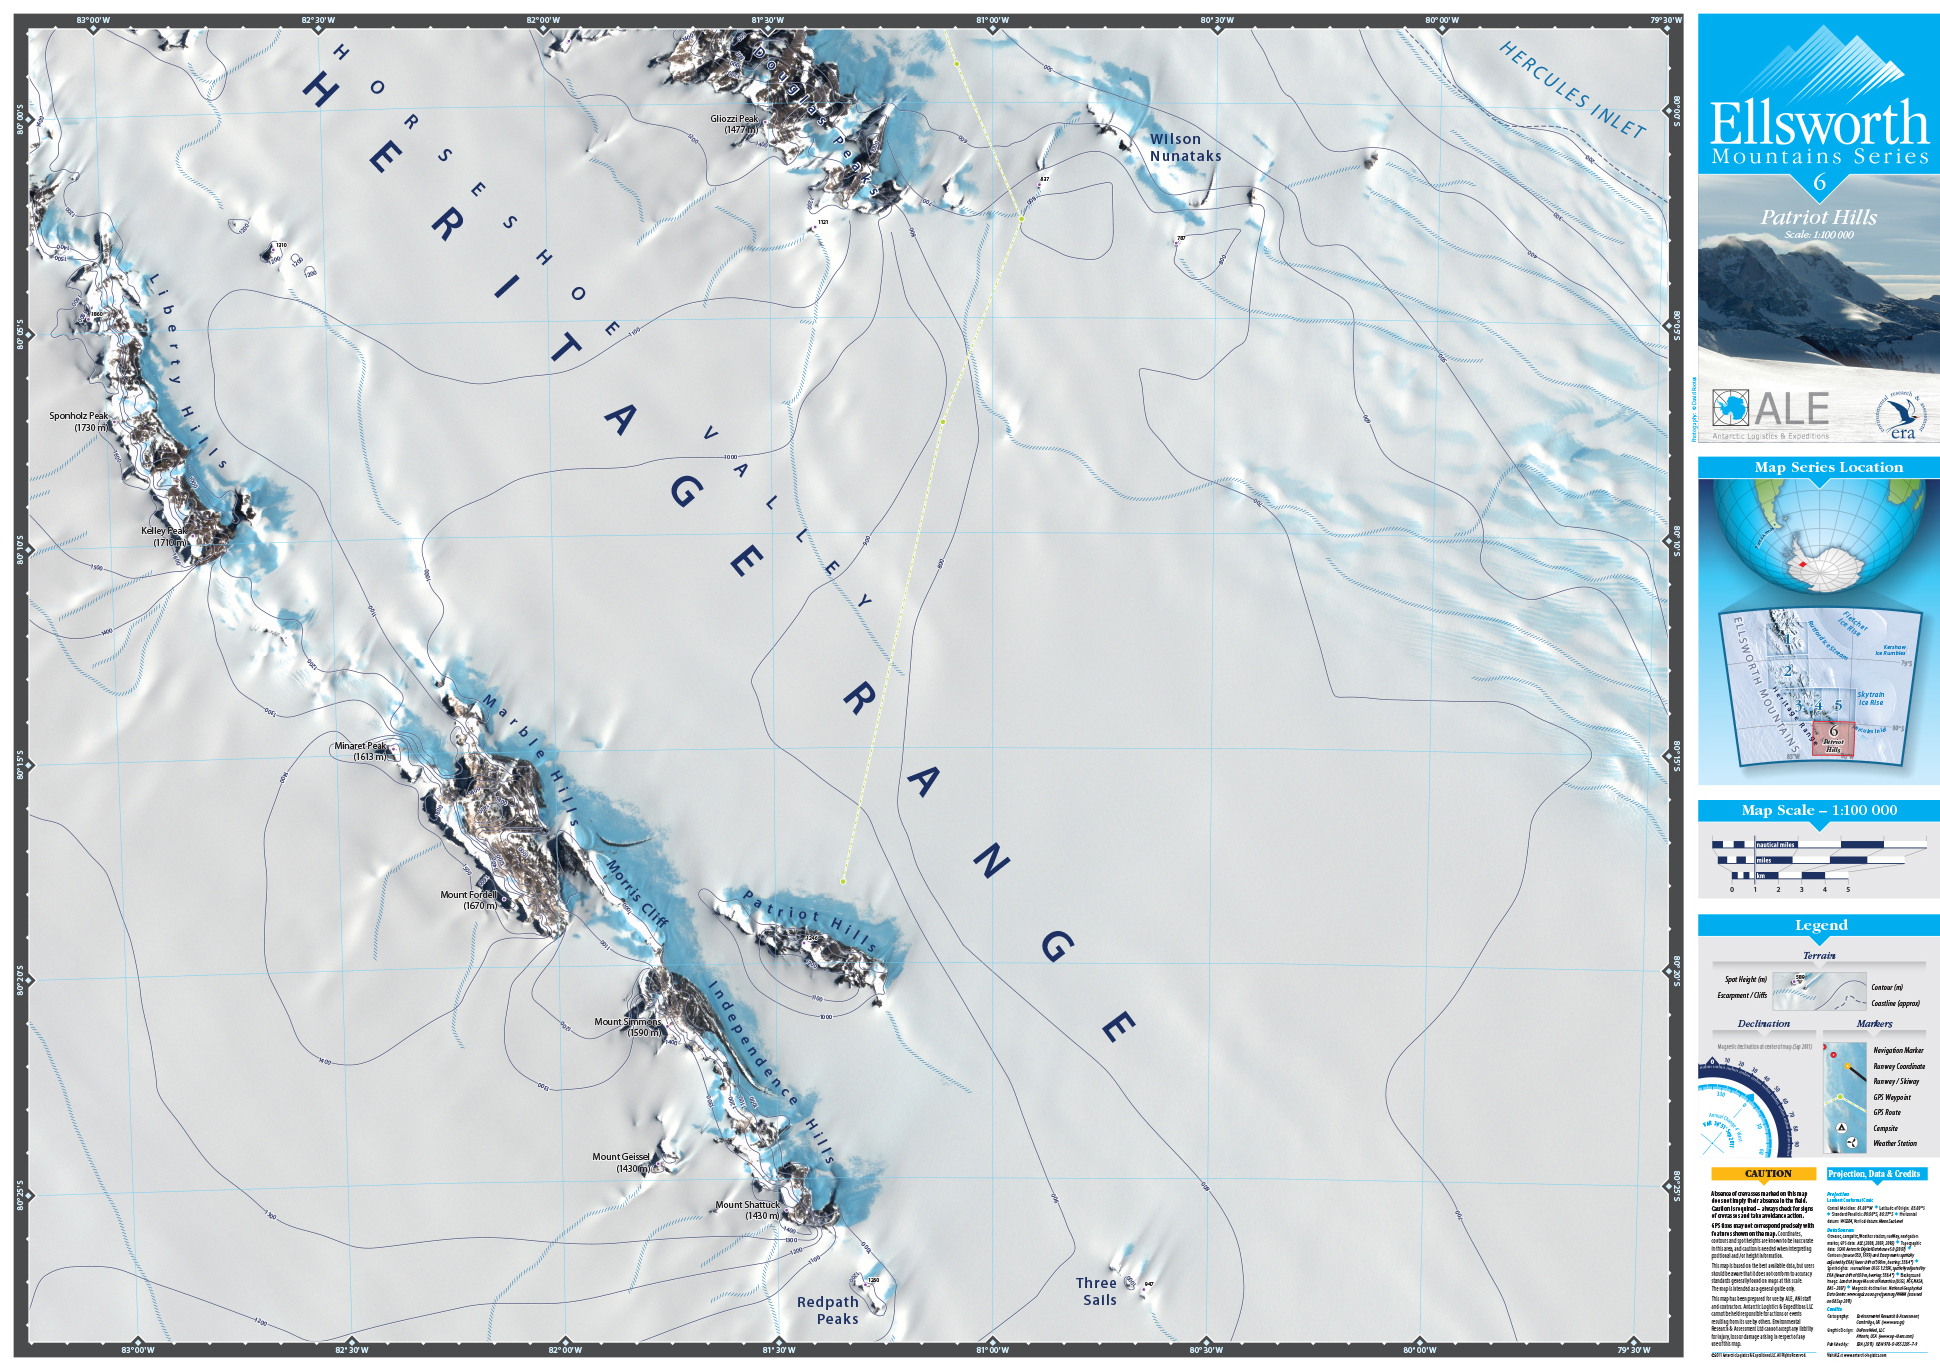 MAP DESIGN - Antarctic Logistics & Expeditions | Ellsworth Mountain Map Series | 6 Patriot Hills - ©UnParalleled, LLC dba UP-Ideas / Roger Sawhill / Mark Braught - Atlanta, Georgia | Lawrenceville, Georgia | Commerce, Georgia